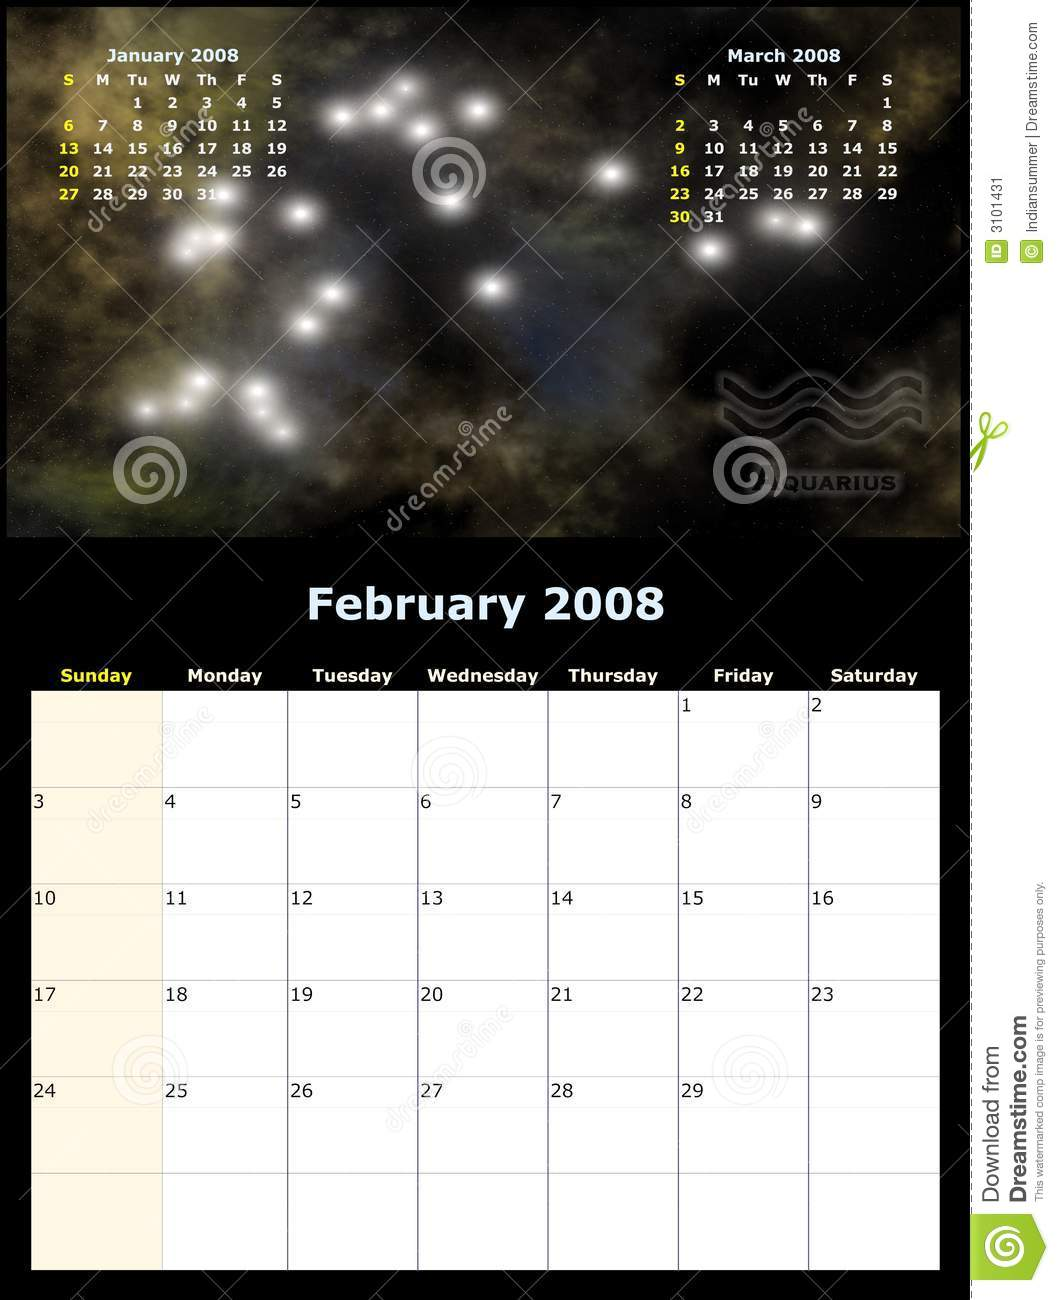 Monthly Calendar Horoscope : Monthly fengshui horoscope autos post